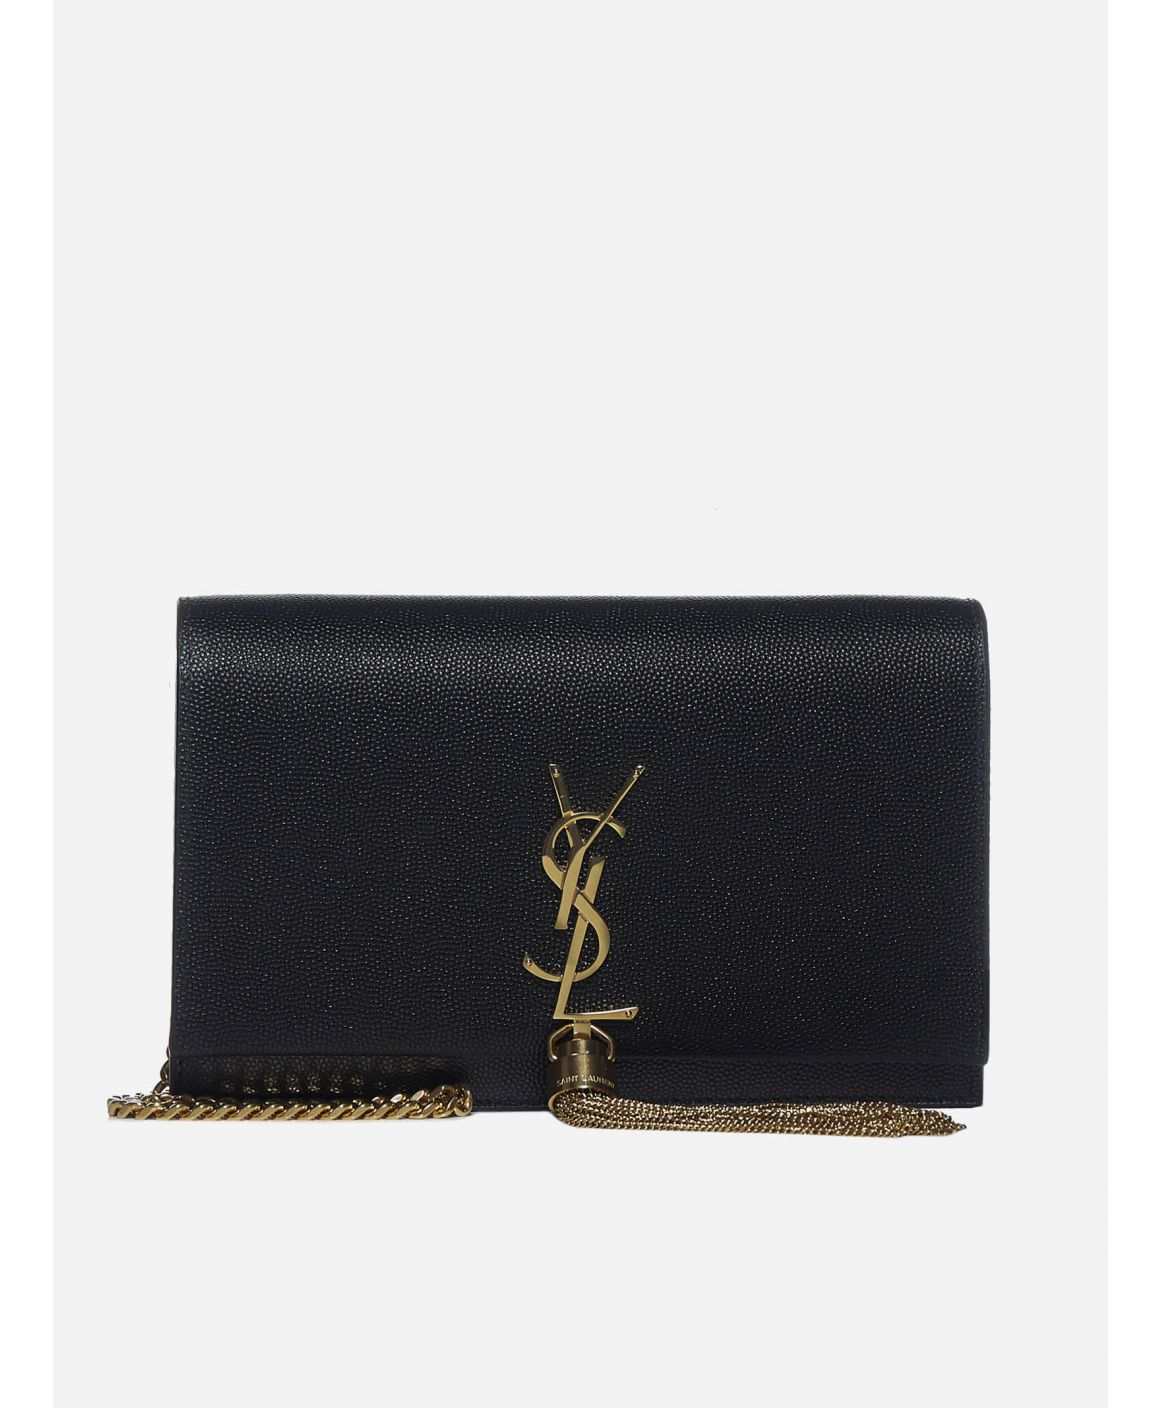 Monogram grained leather clutch bag